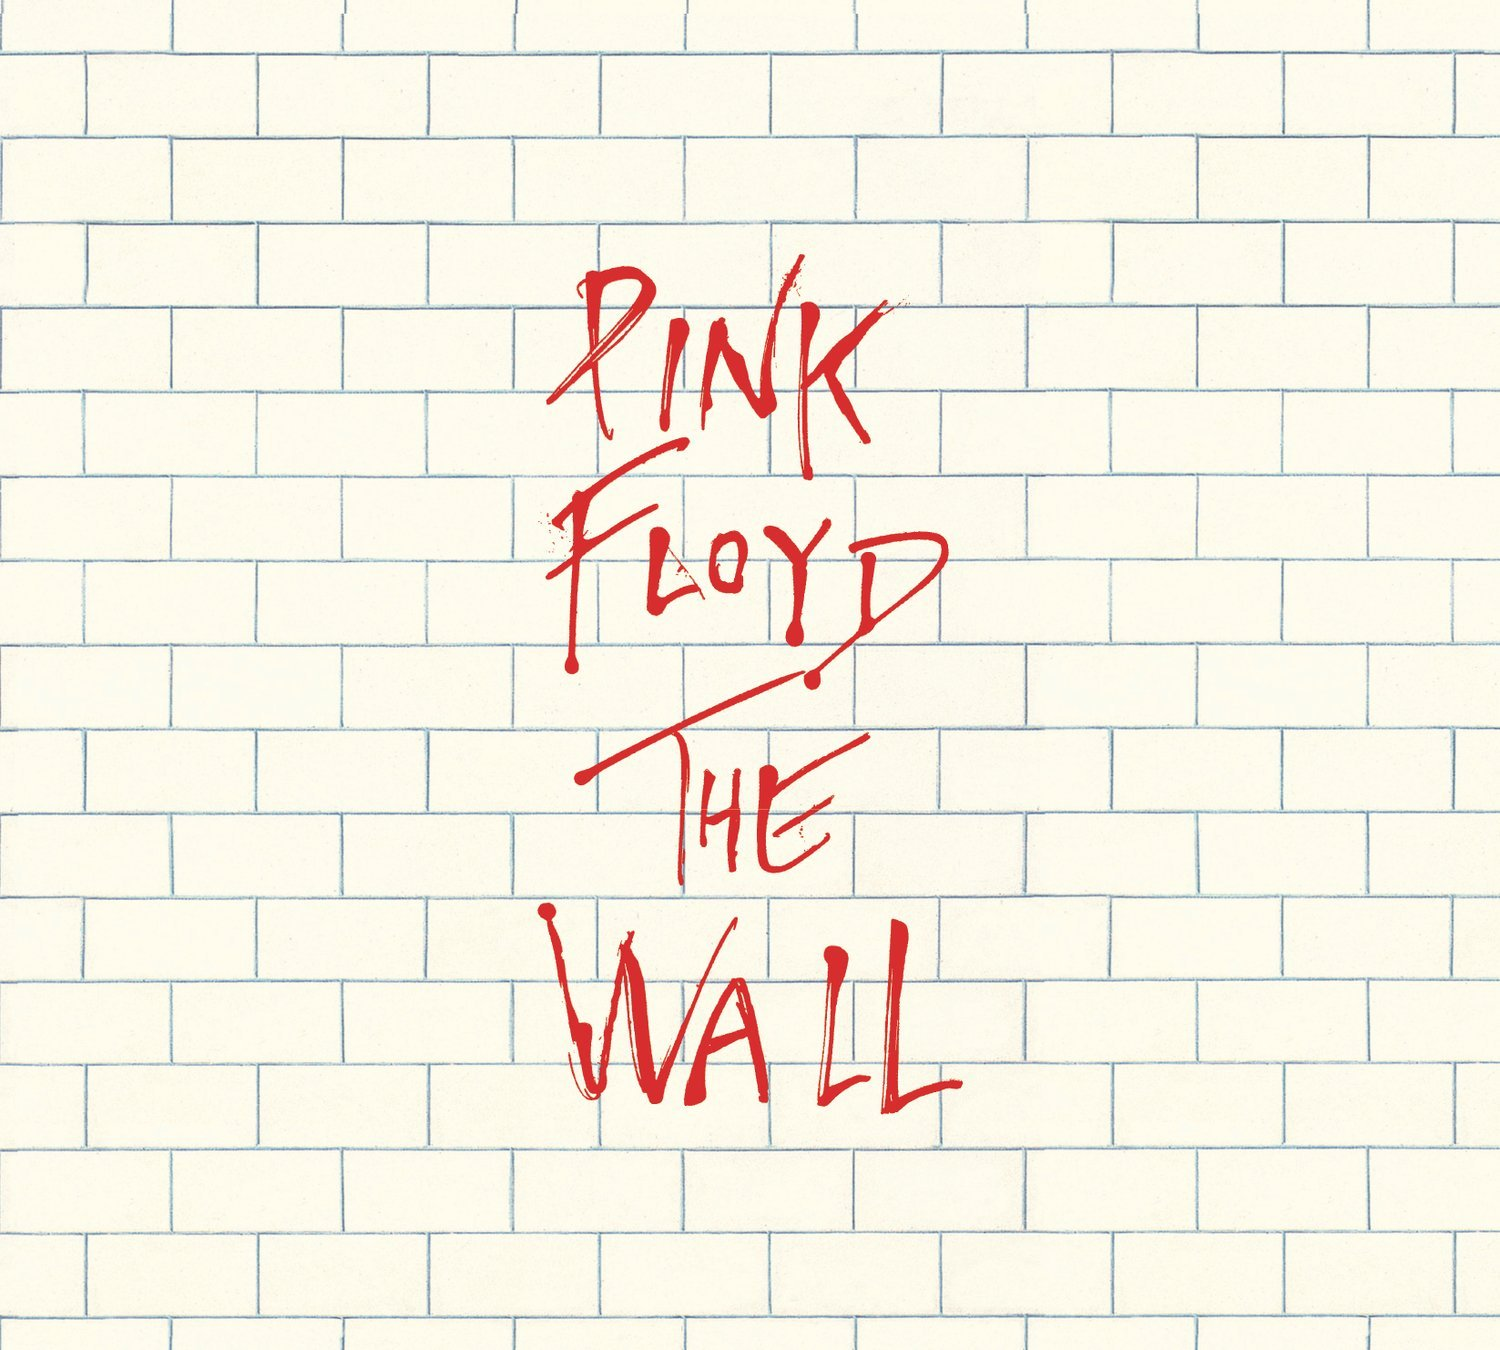 The Wall Pink Floyd: Pink Floyd's 'The Wall,' Full Catalog, Returning To Vinyl